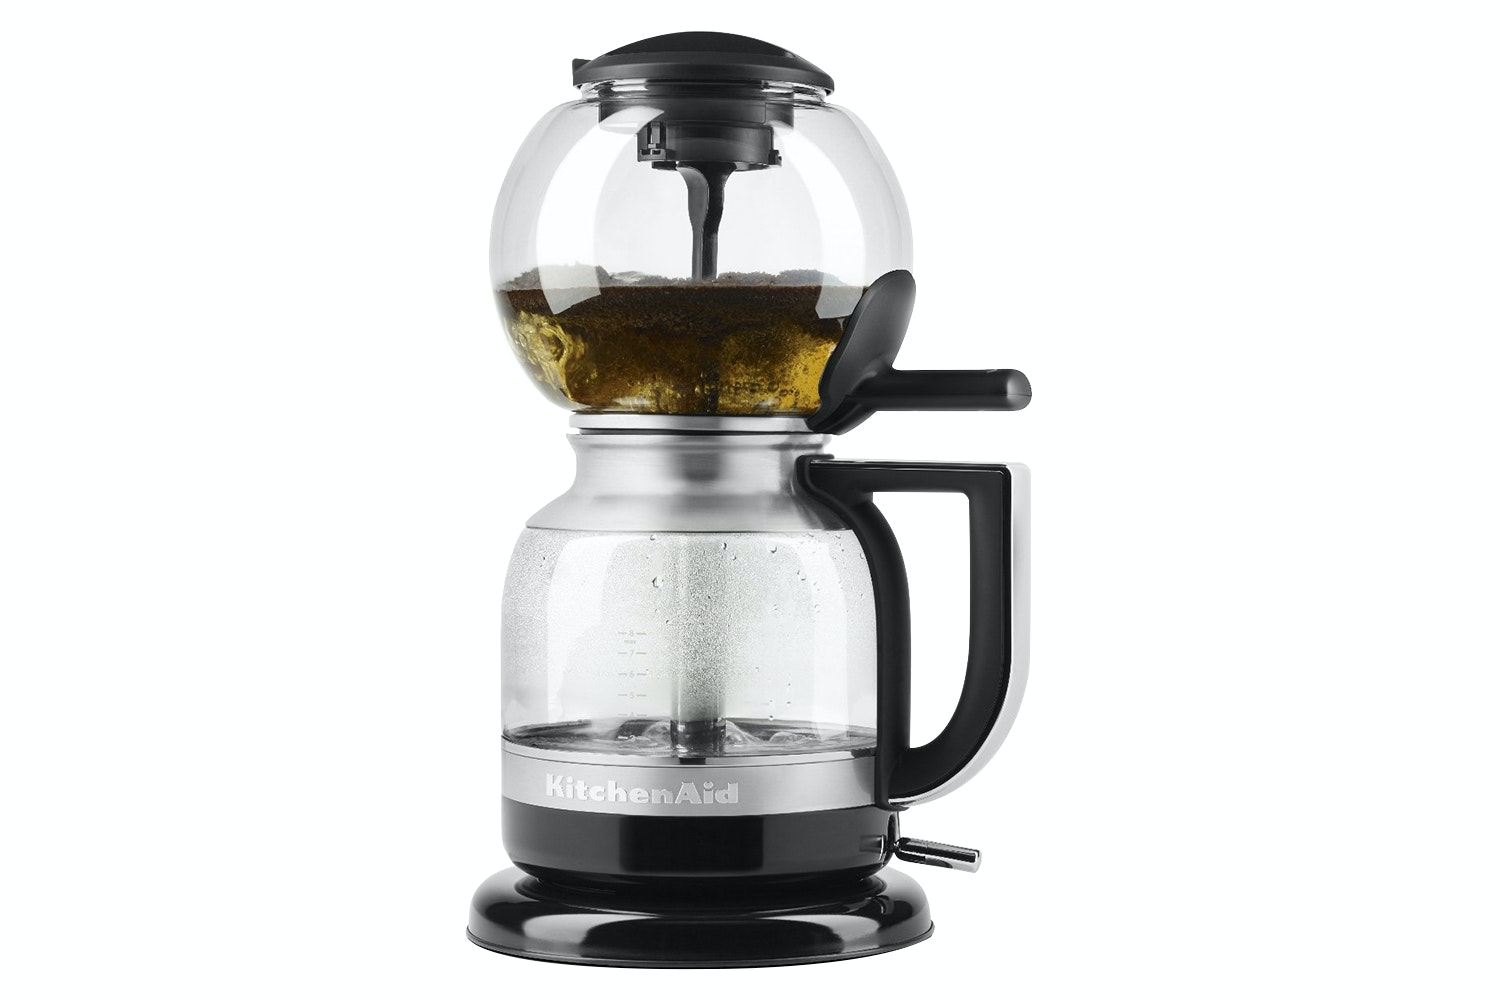 KitchenAid Siphon Brewer Coffee Machine | Onyx Black